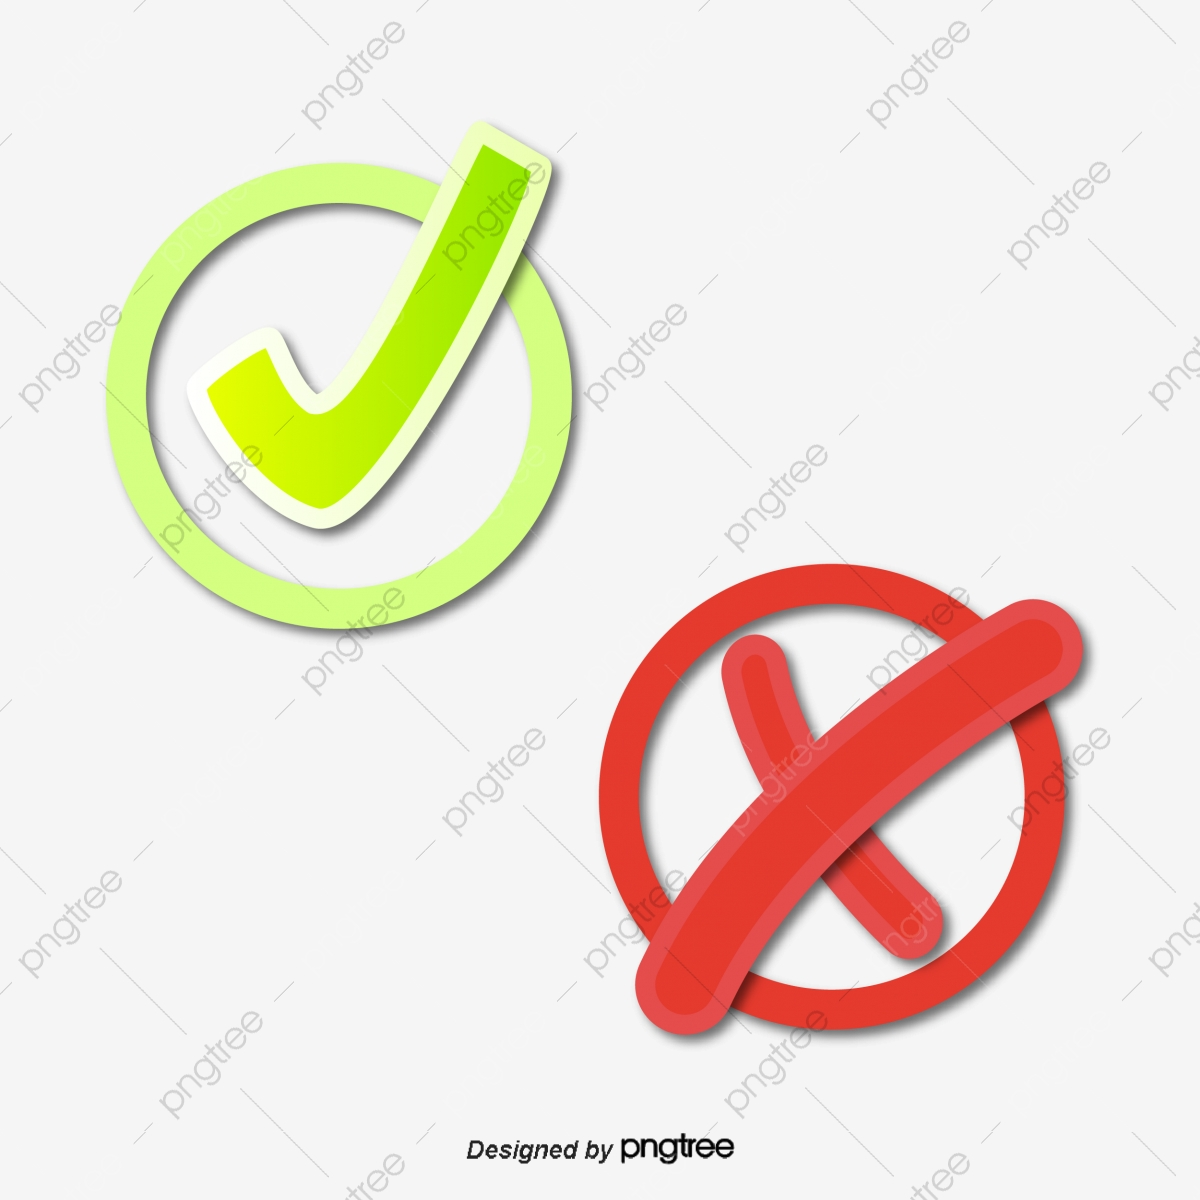 Check Mark And Cross Mark, Check Clipart, Cross Clipart, Error PNG.